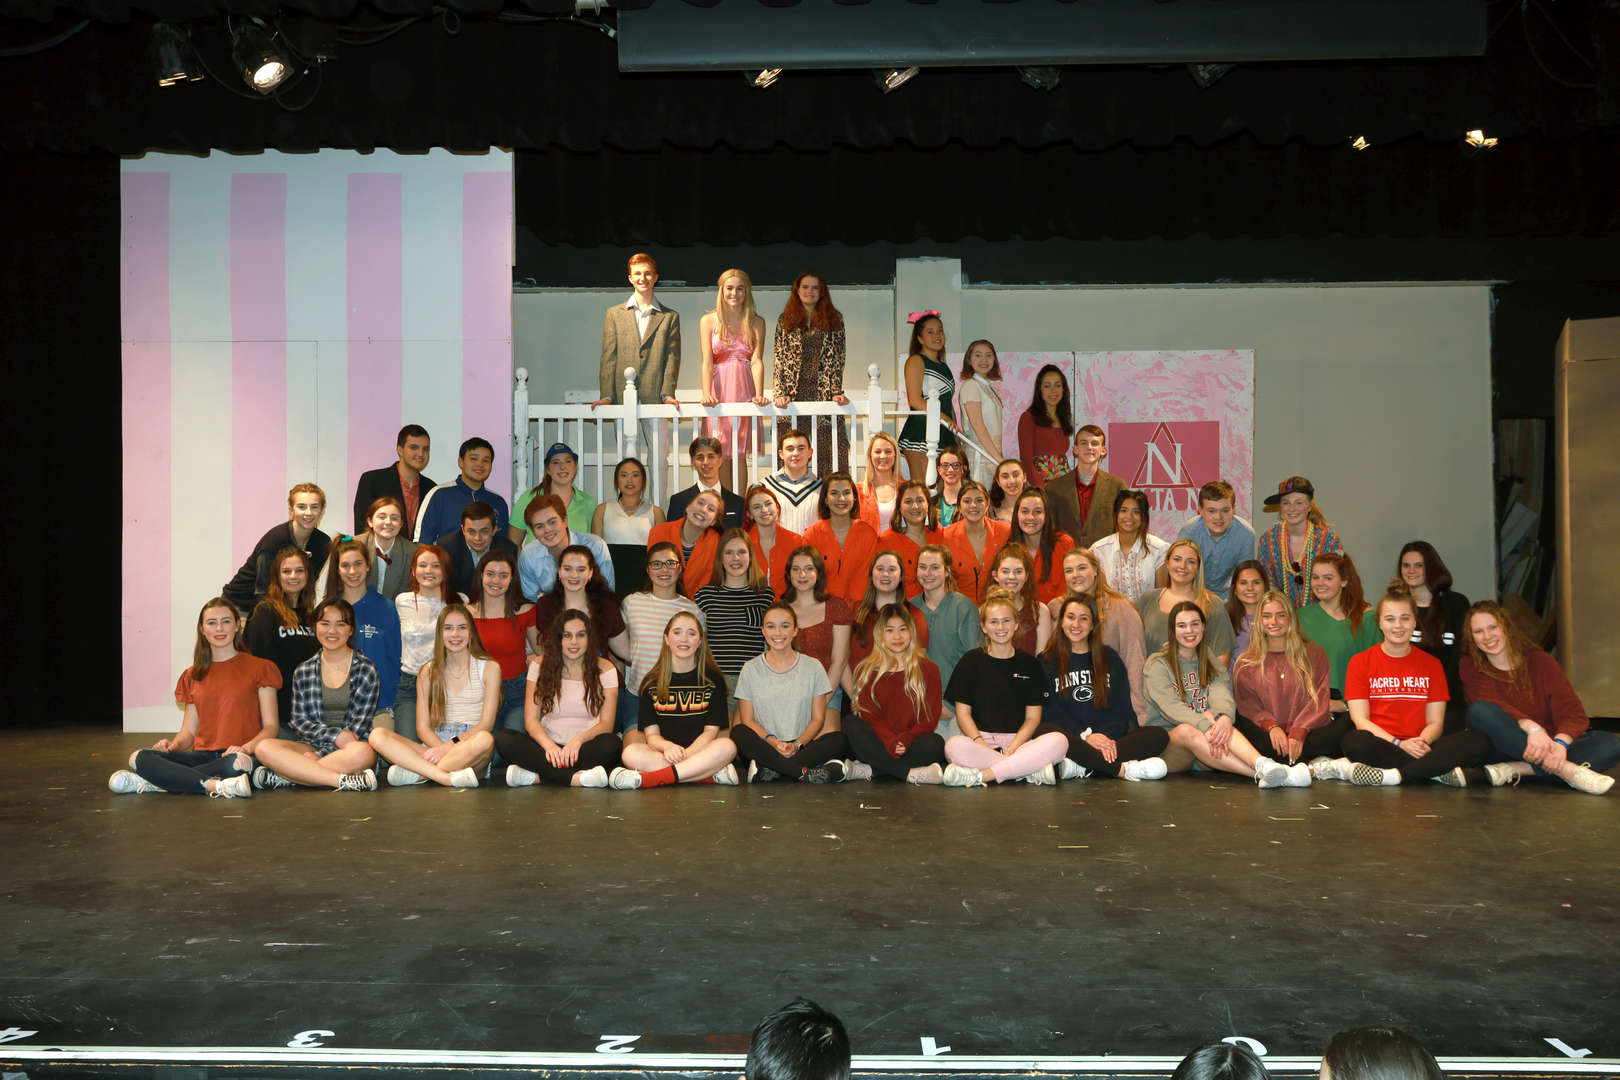 Legally Blonde Musical Cast